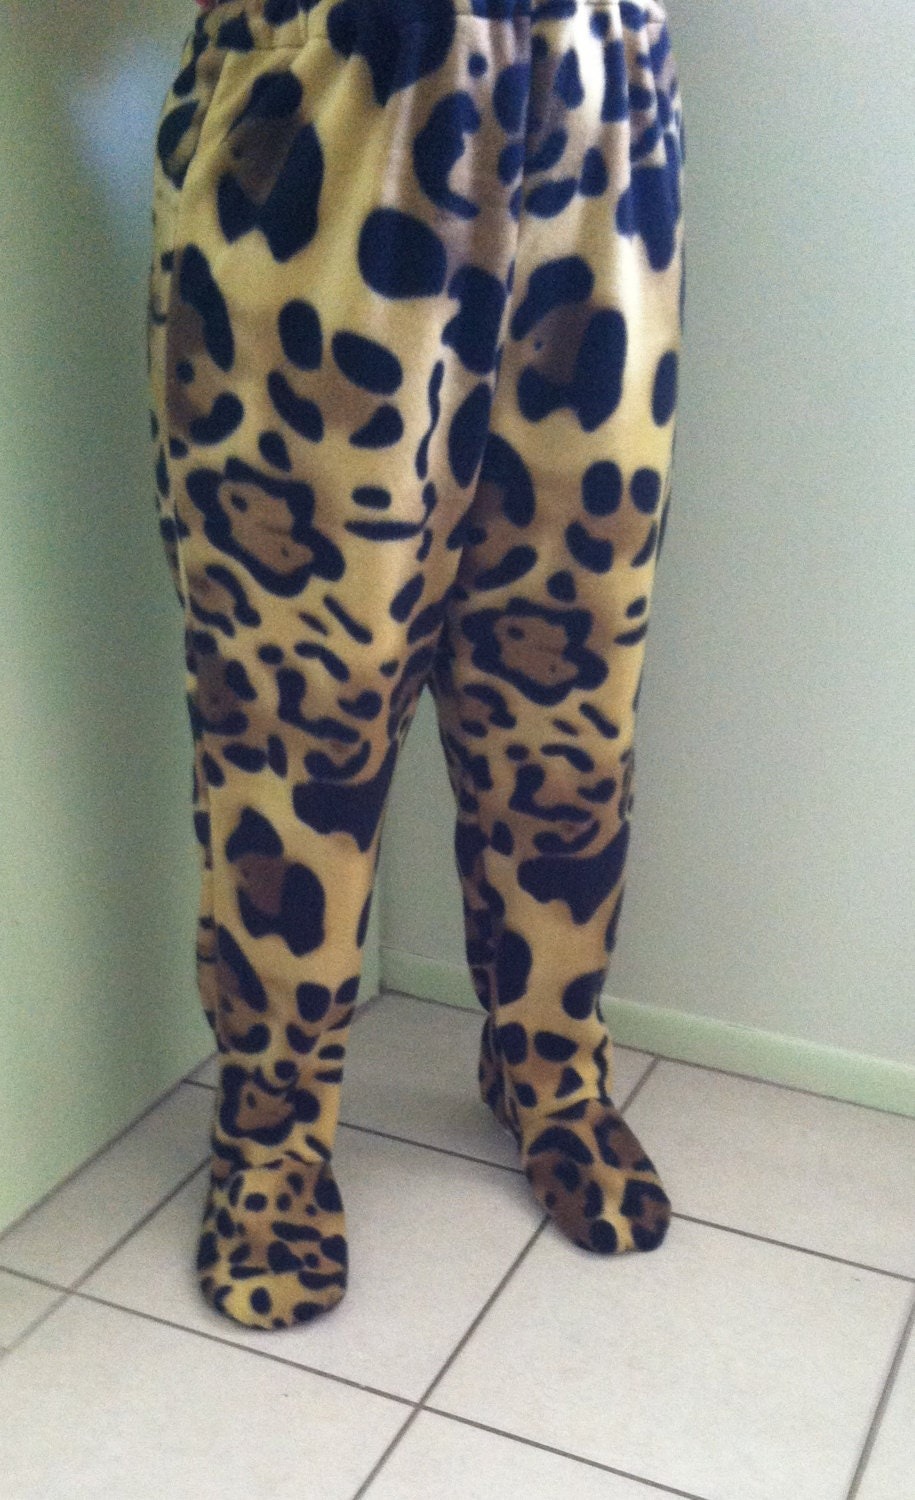 Footed Pajamas Cheetah Spots Adult Hoodie Chenille. by Footed Pajamas. $ $ 44 95 Prime. FREE Shipping on eligible orders. Some sizes are Prime eligible. SEXY ALL-OVER CHEETAH PRINT SHORTS. Ally's Women's Sleepwear Flannel Pajamas .